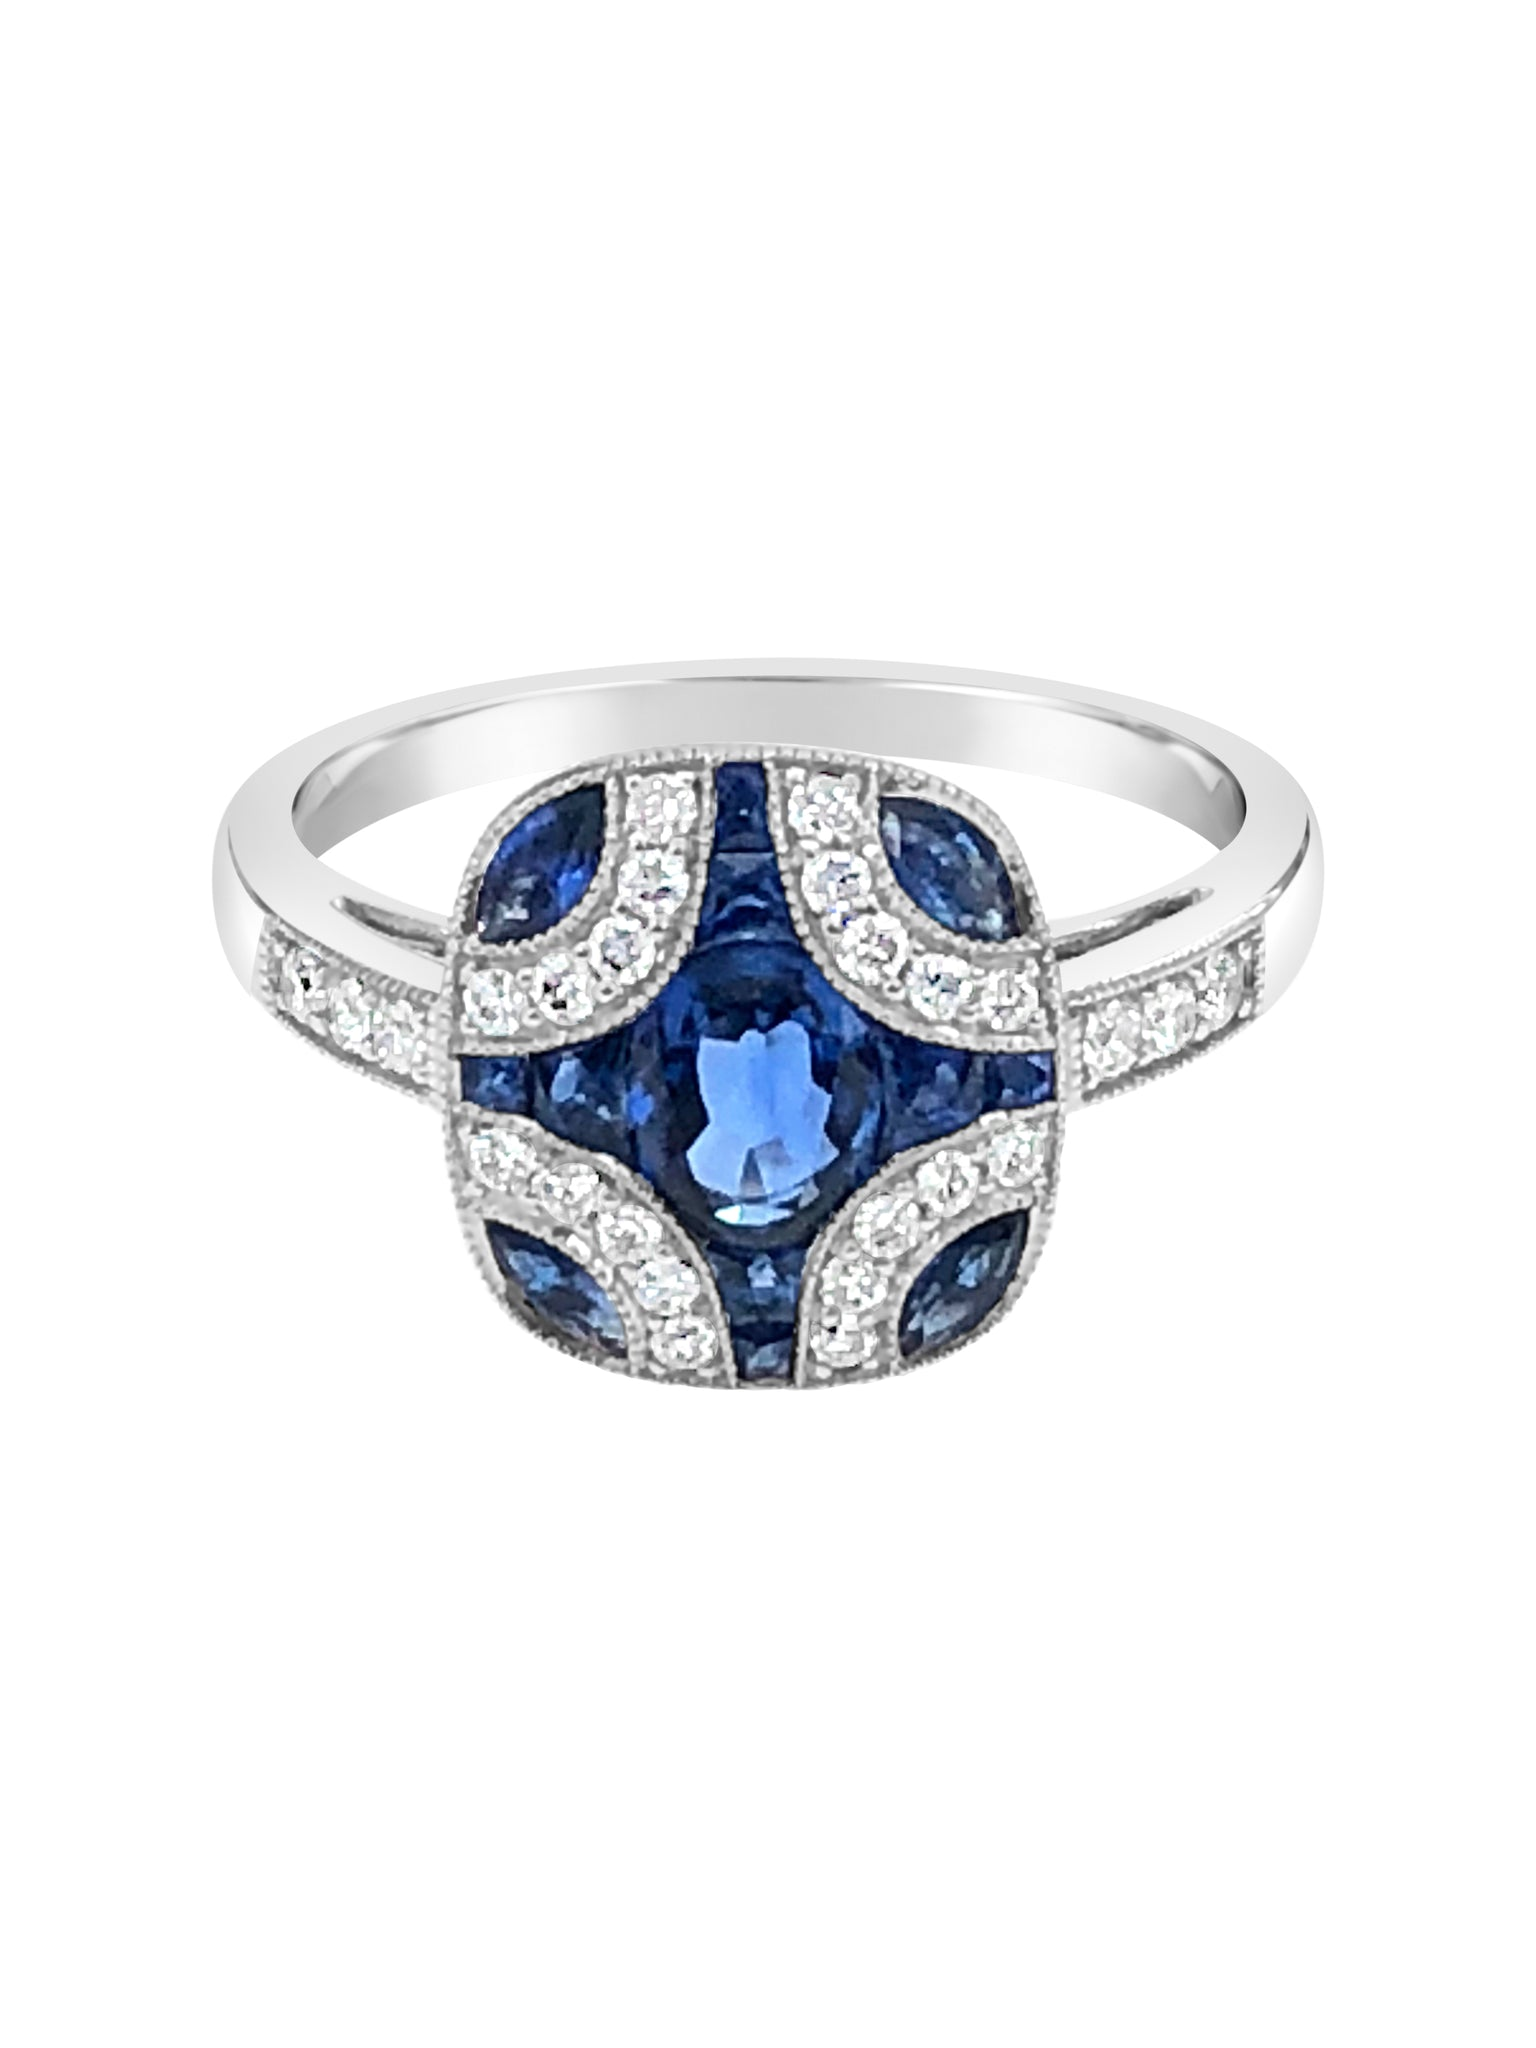 18k white gold ring sapphire diamond art deco style michaels custom jewelers provincetown